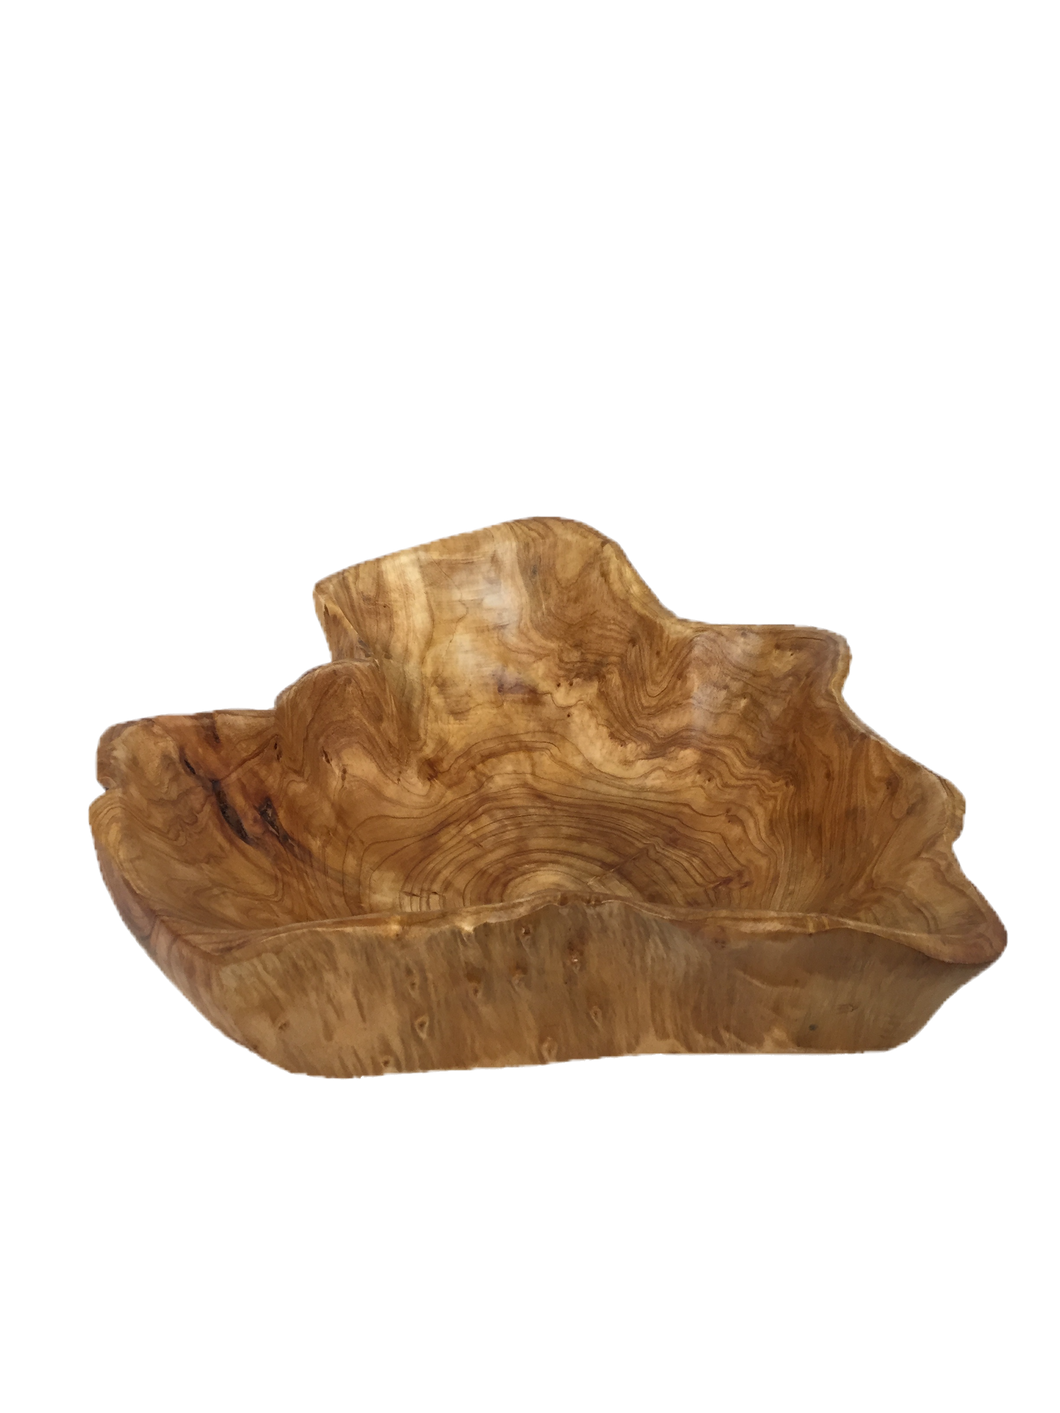 Hand-Crafted Root Wood Live Edge Bowl - Large (18-19